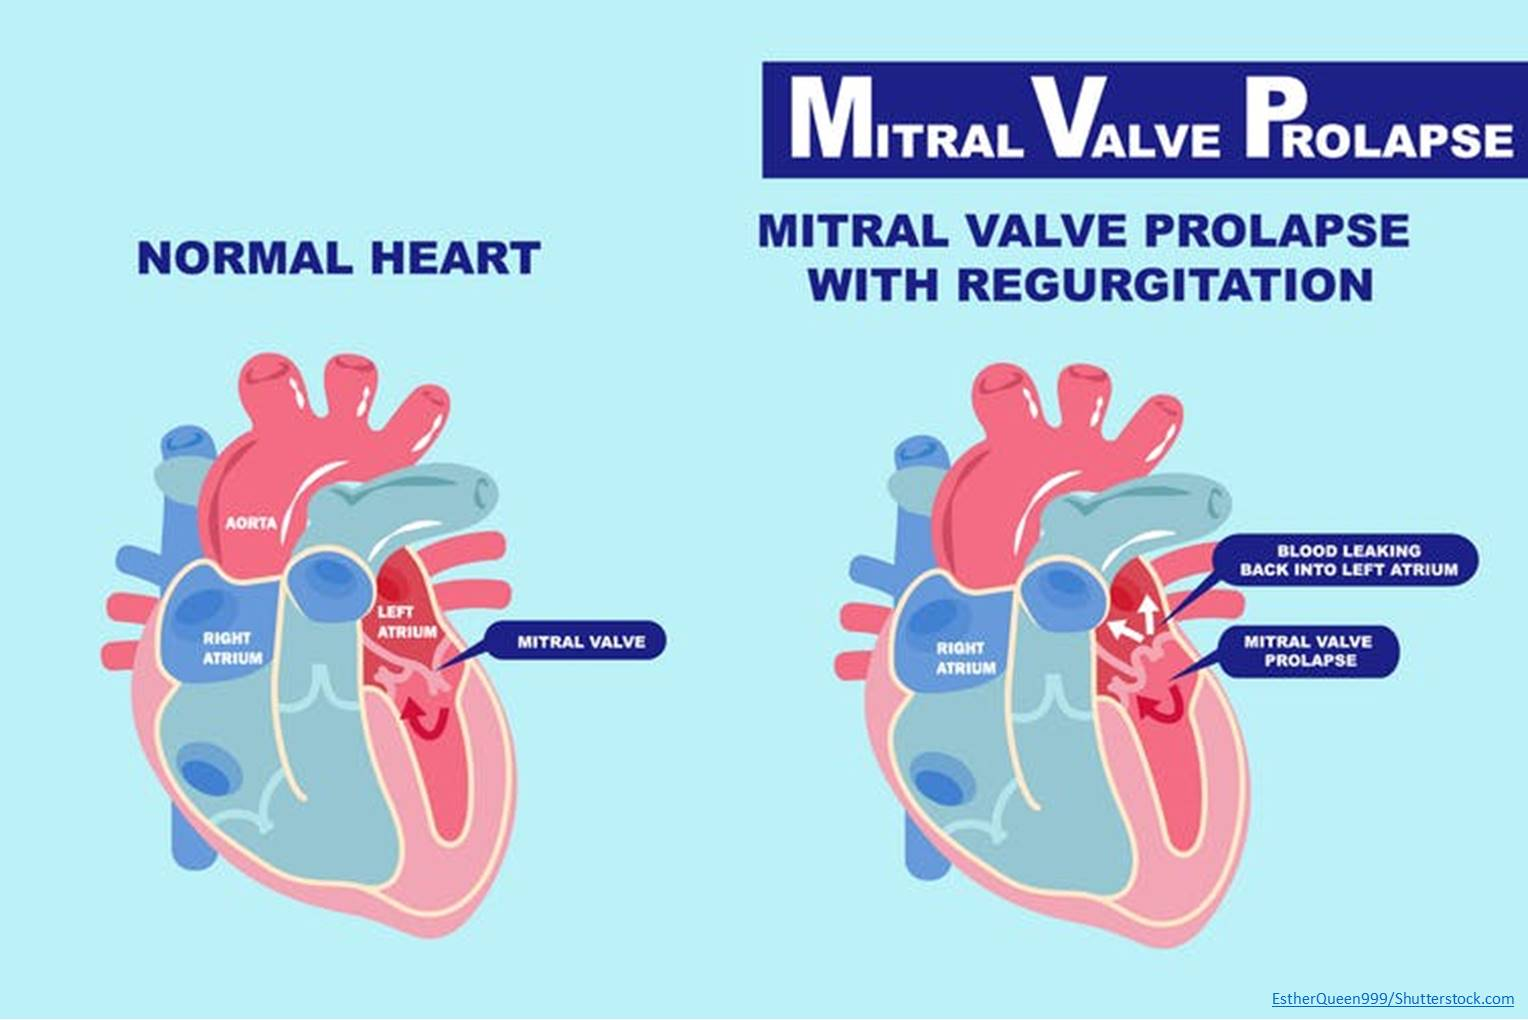 Defects in cilia can cause a common heart valve condition